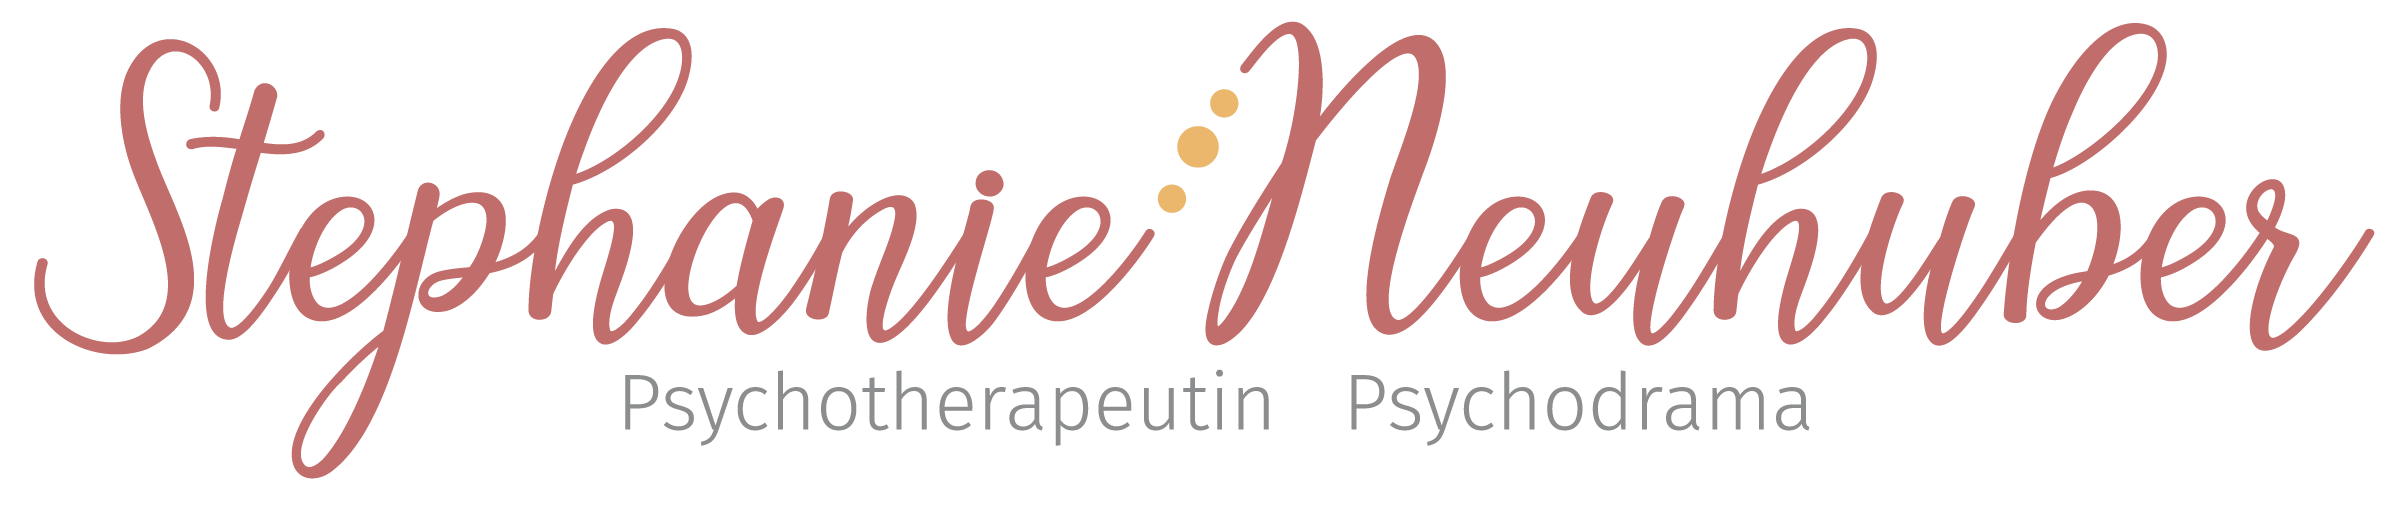 Psychotherapie Stephanie Neuhuber in Linz